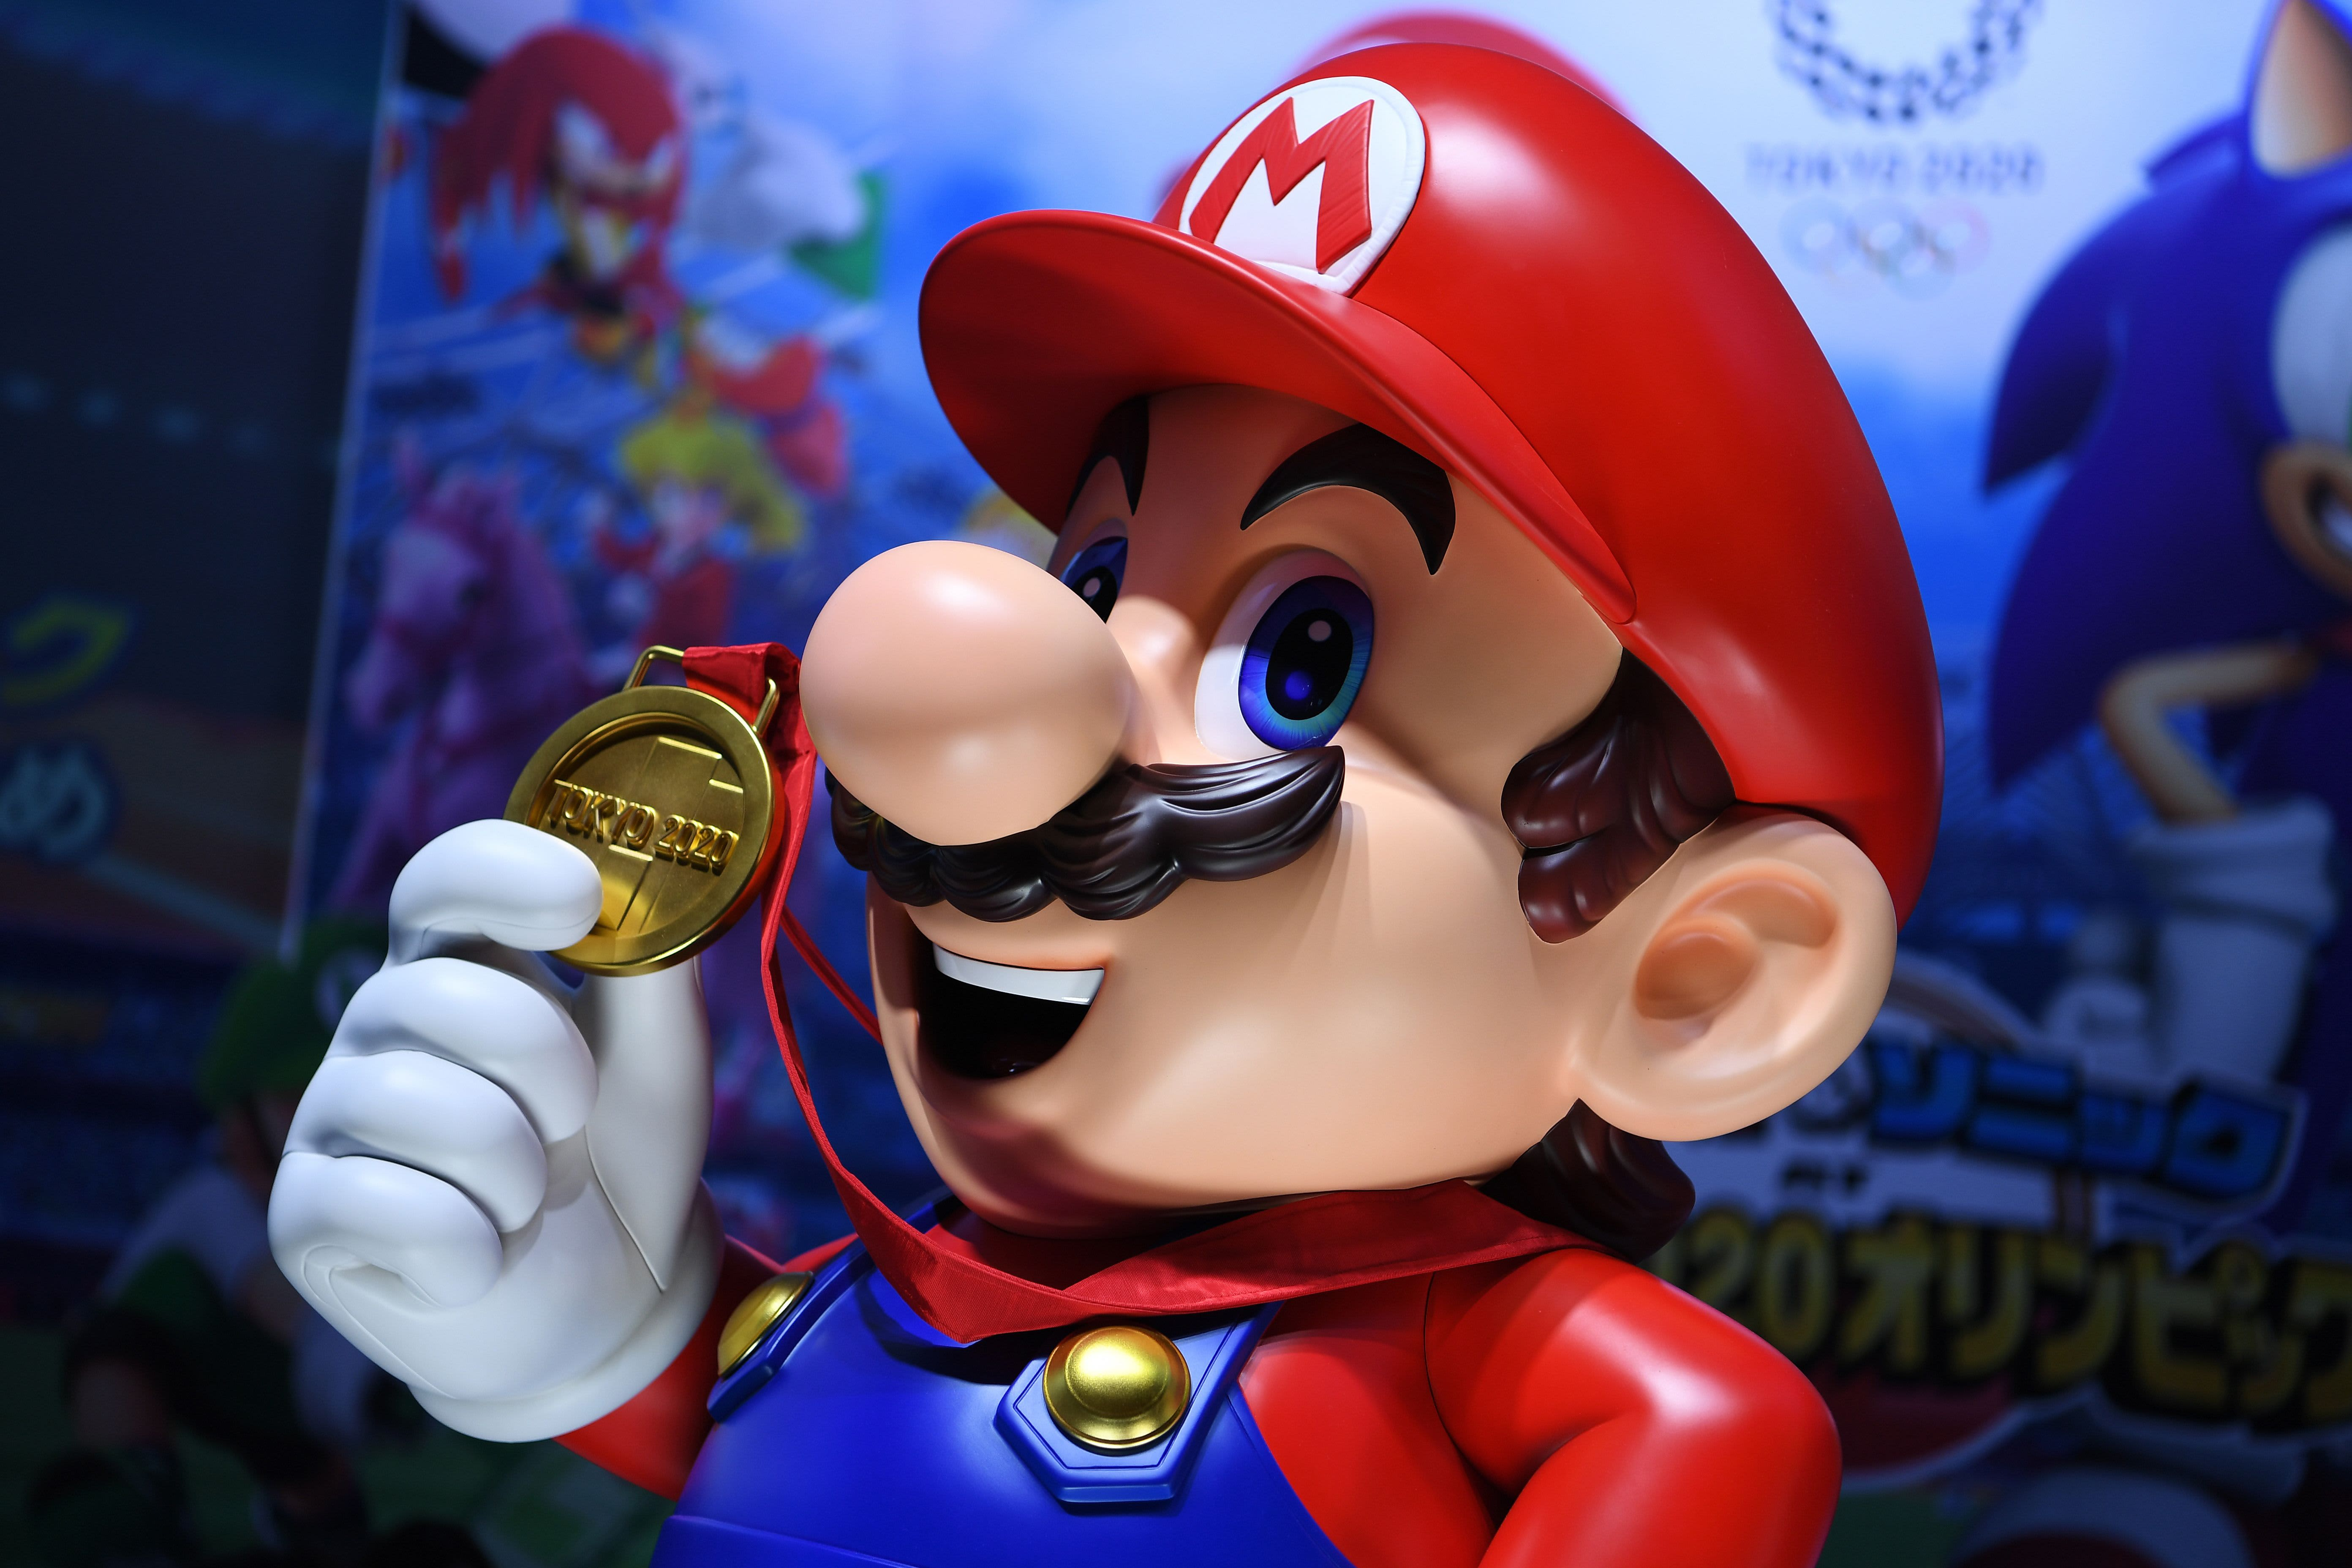 Expectations are 'sky high' for Nintendo's latest Mario mobile game, analyst says